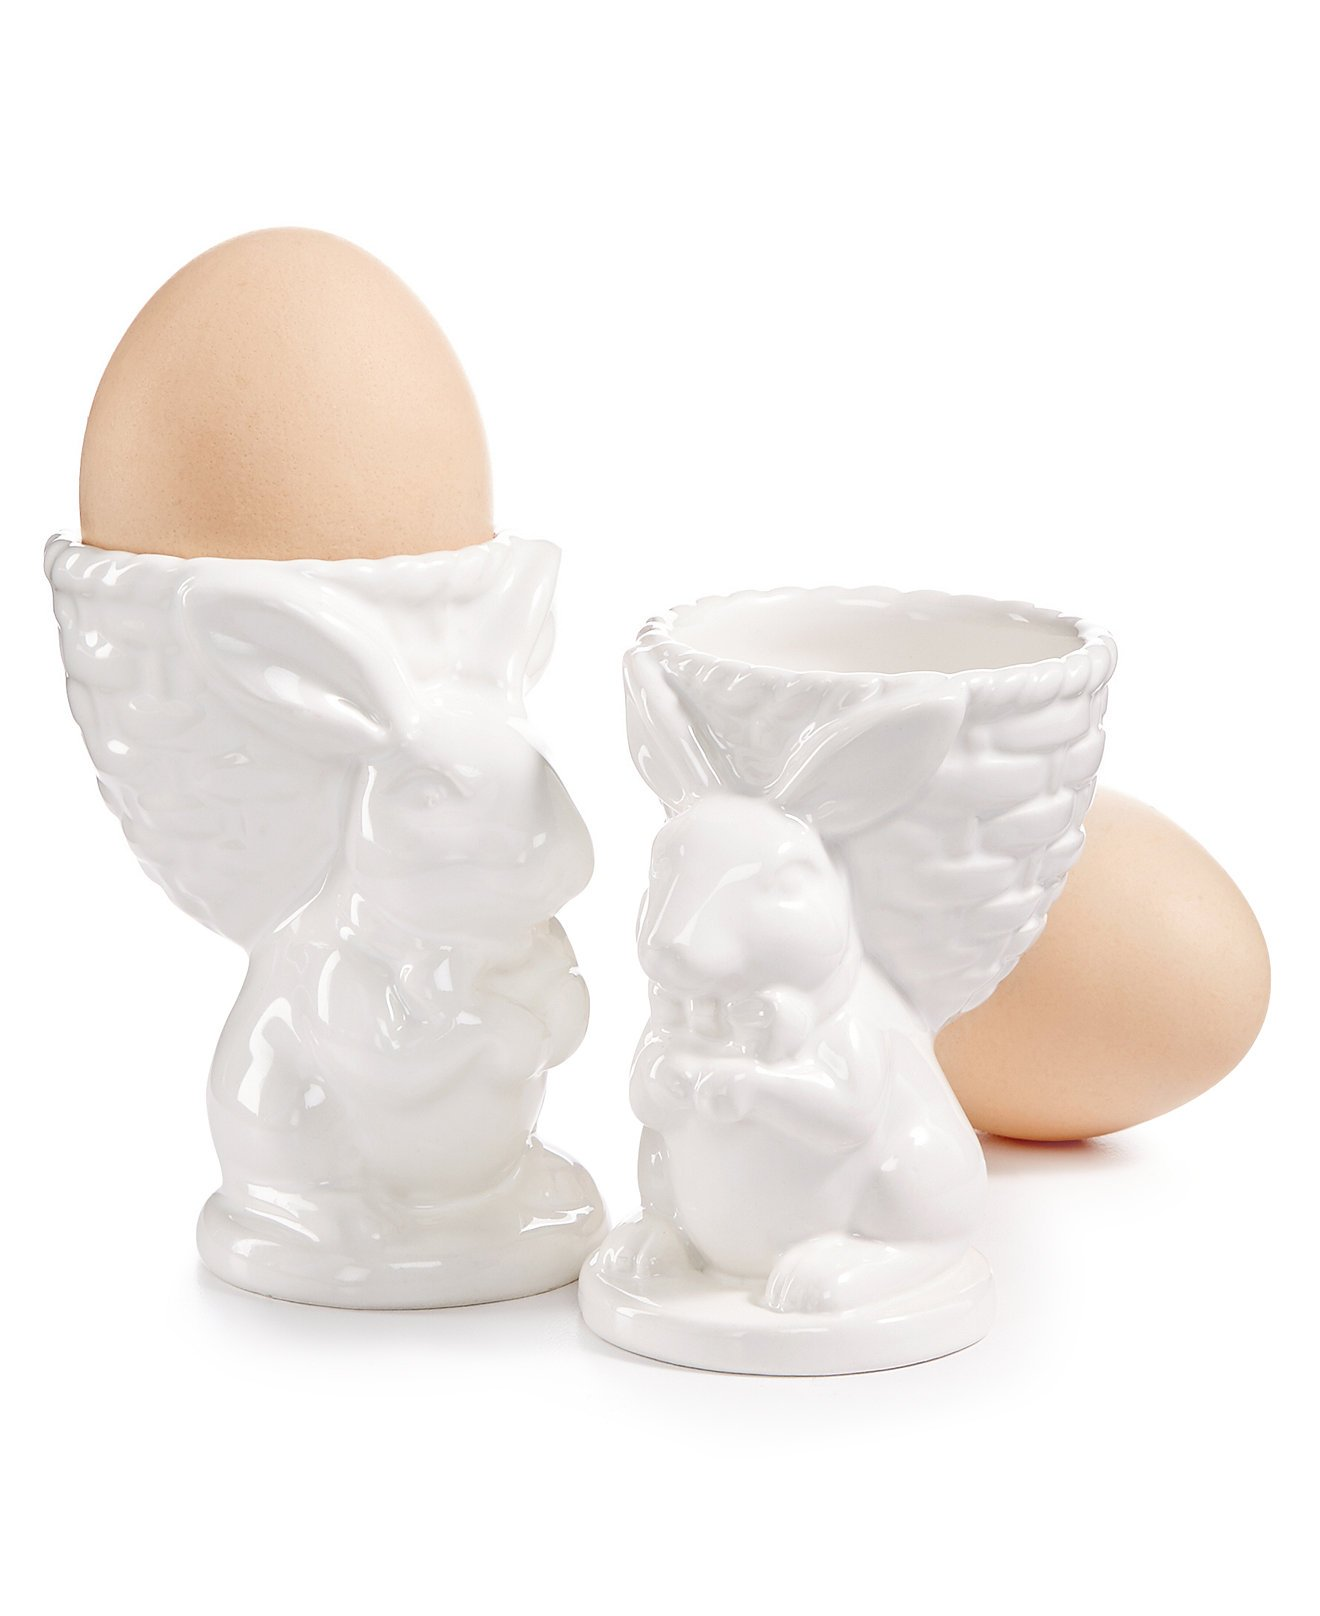 Martha Stewart Collection Bunny Egg Cups, White (Set of 2)